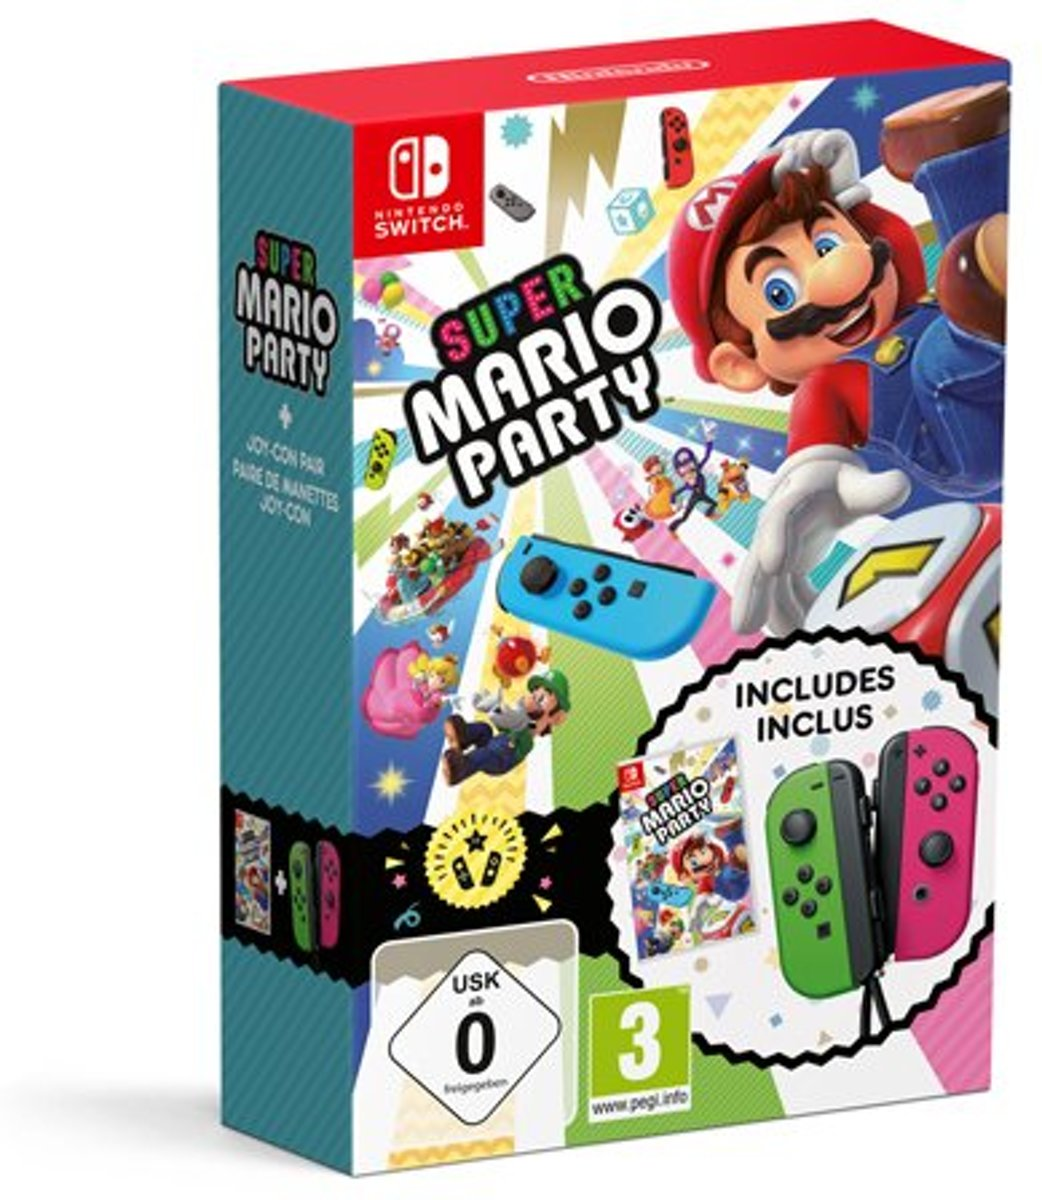 Nintendo Super Mario Party bundel + Joycon controllers - Switch